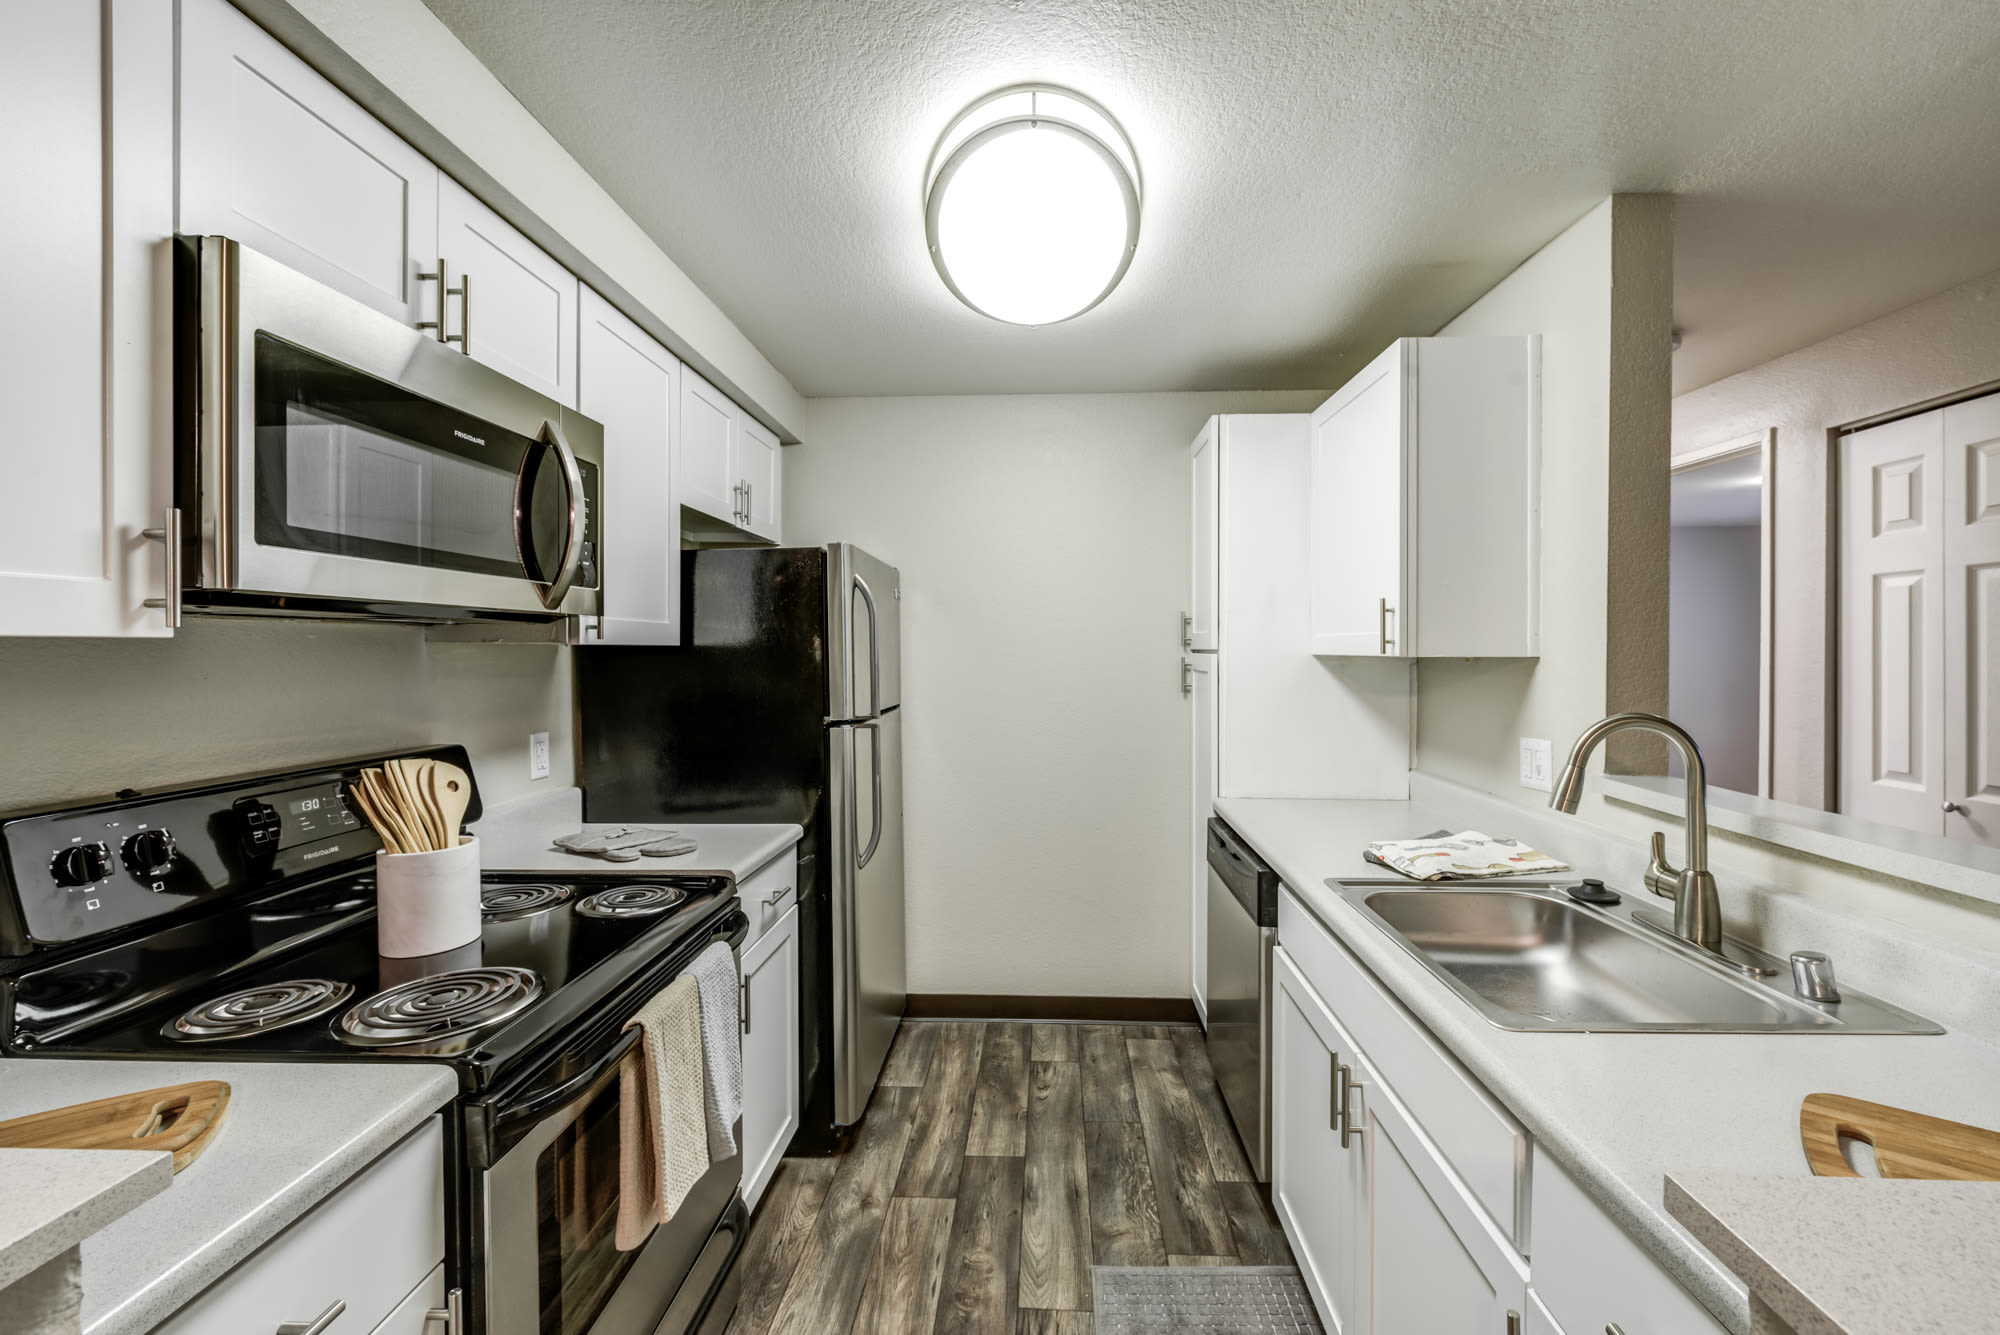 White renovated kitchen with stainless steel appliances at Olin Fields Apartments in Everett